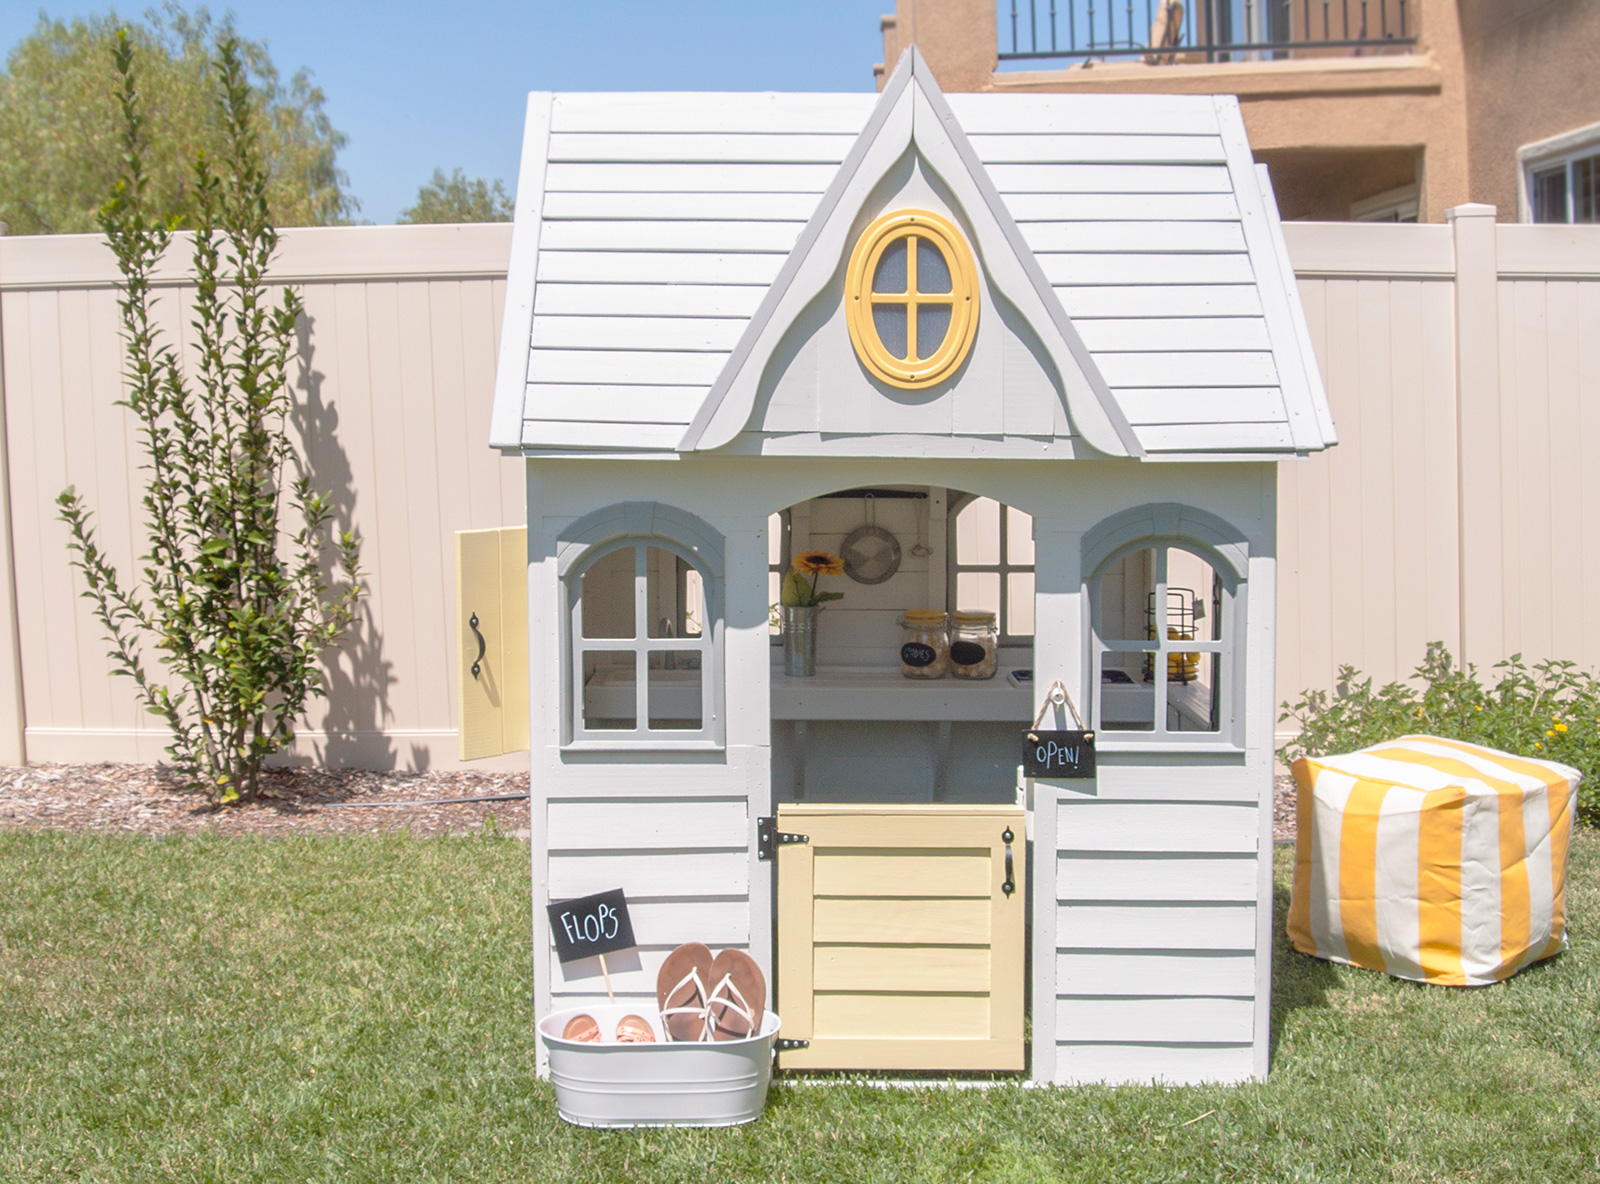 Playhouse Decoration Ideas